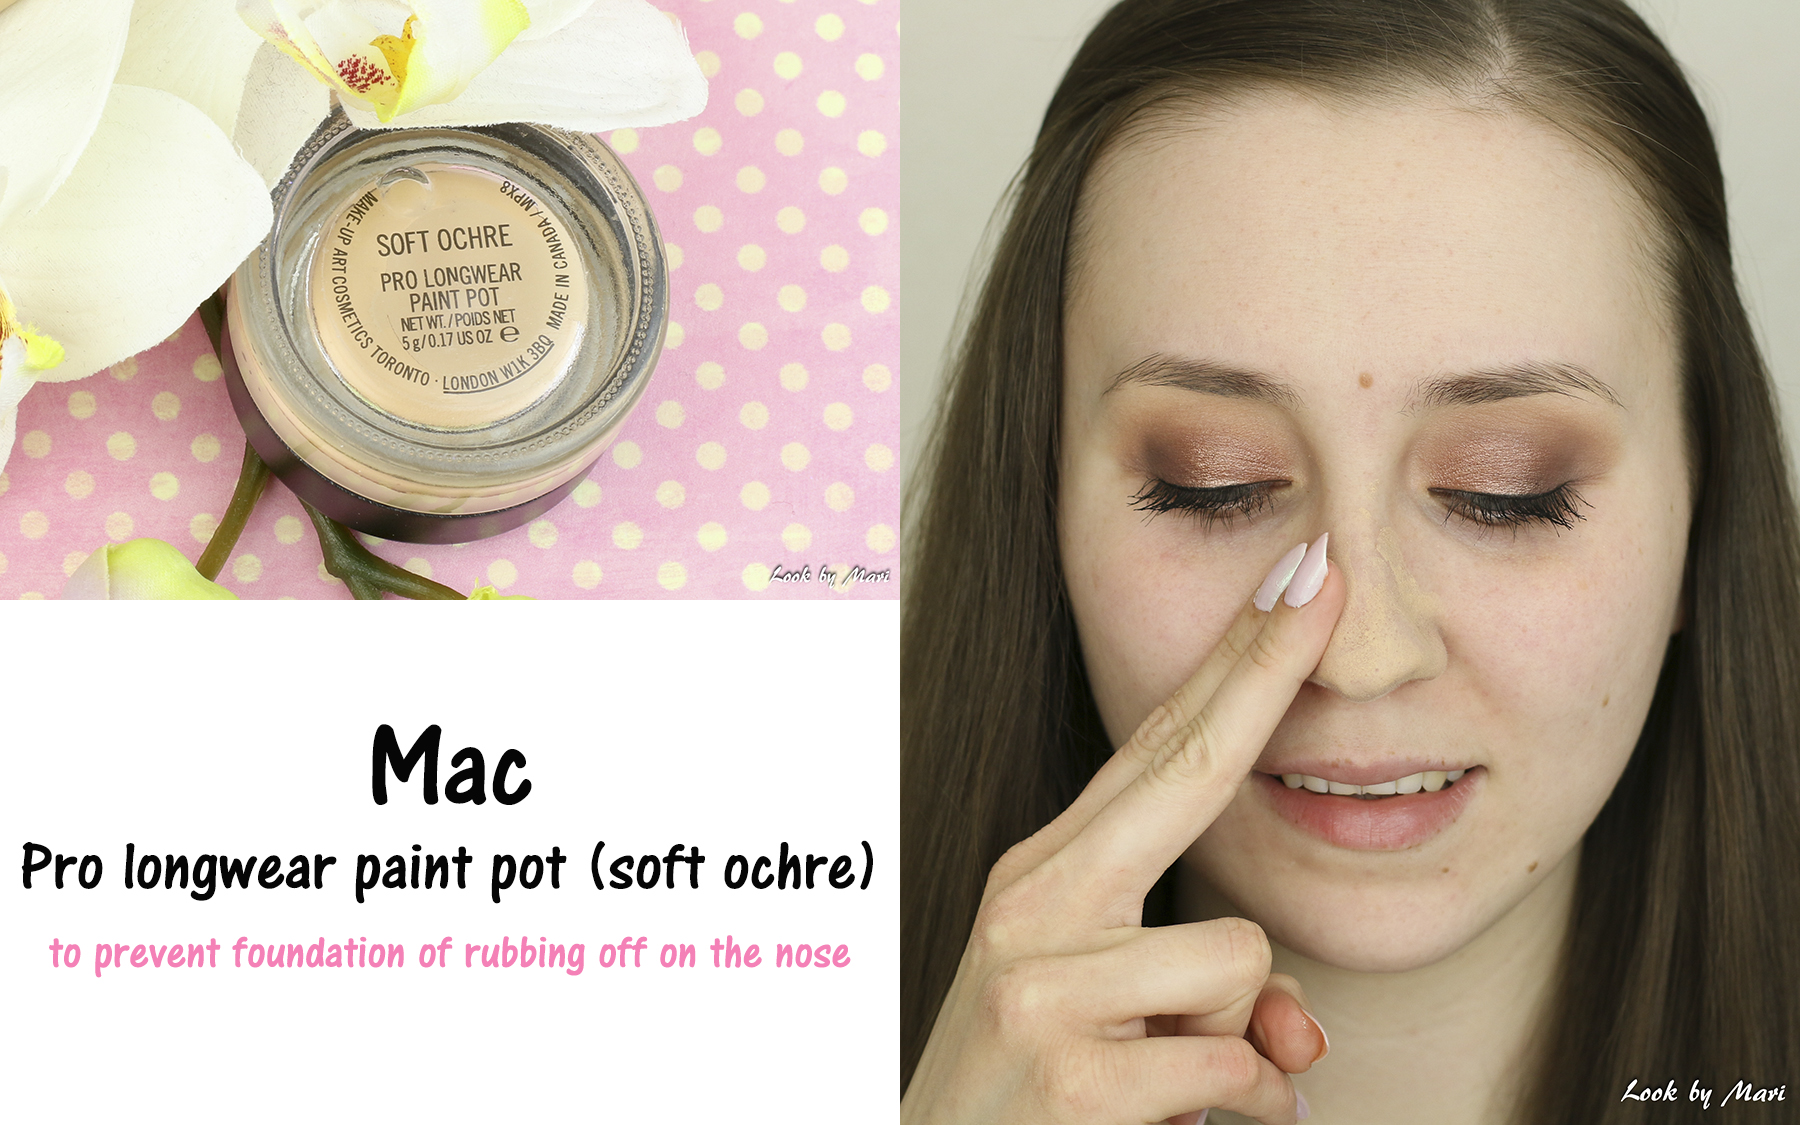 7 mac pro longwear paint pot soft ochre review for oily combination skin kokemuksia